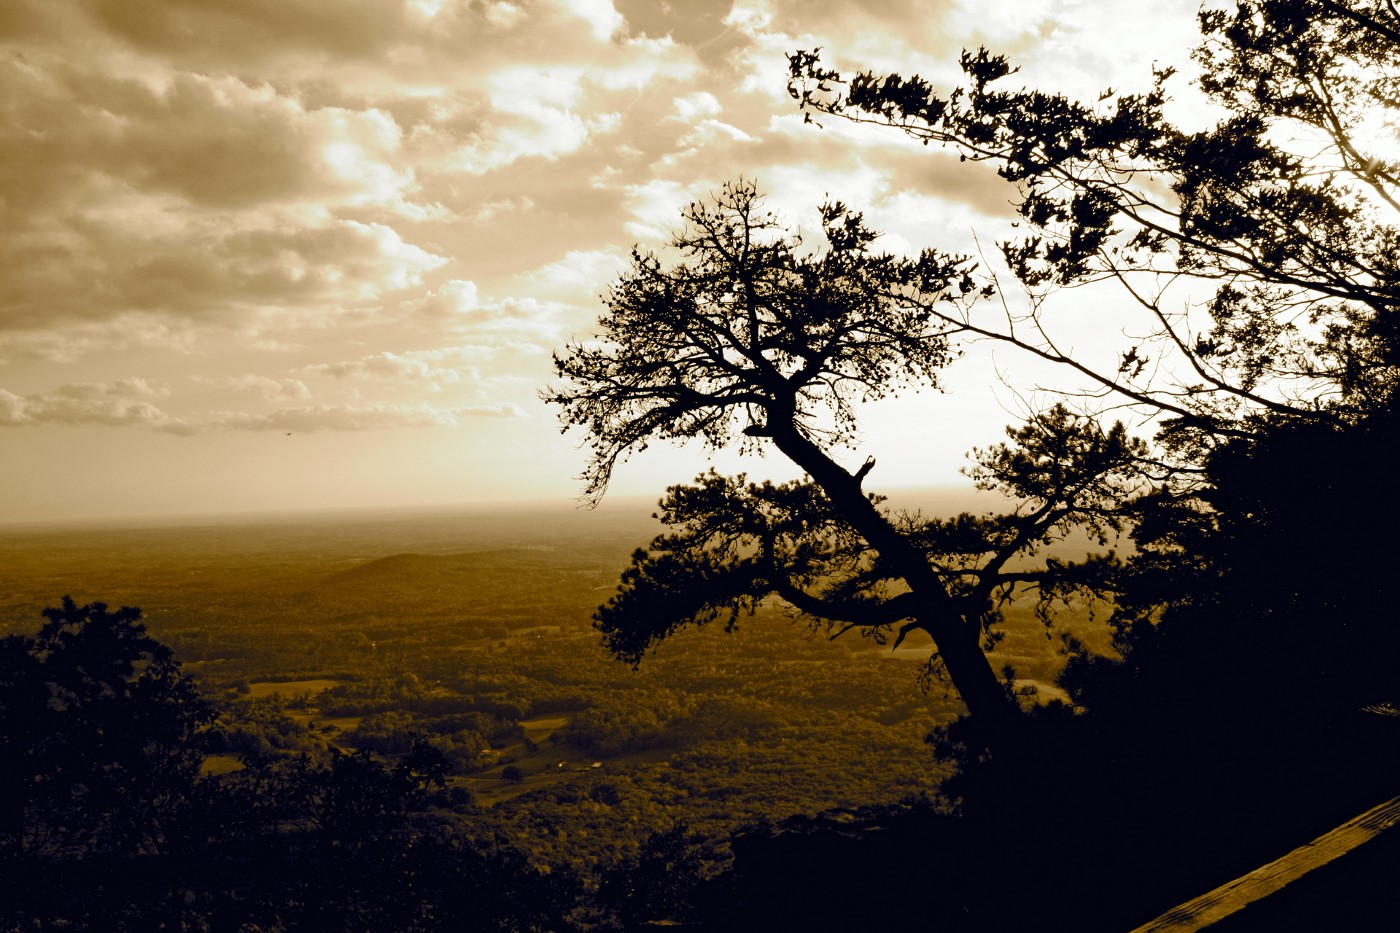 Sepia Pilot Mountain overlook with tree. artisticmysticsoul.com-Lisa Beth Wright